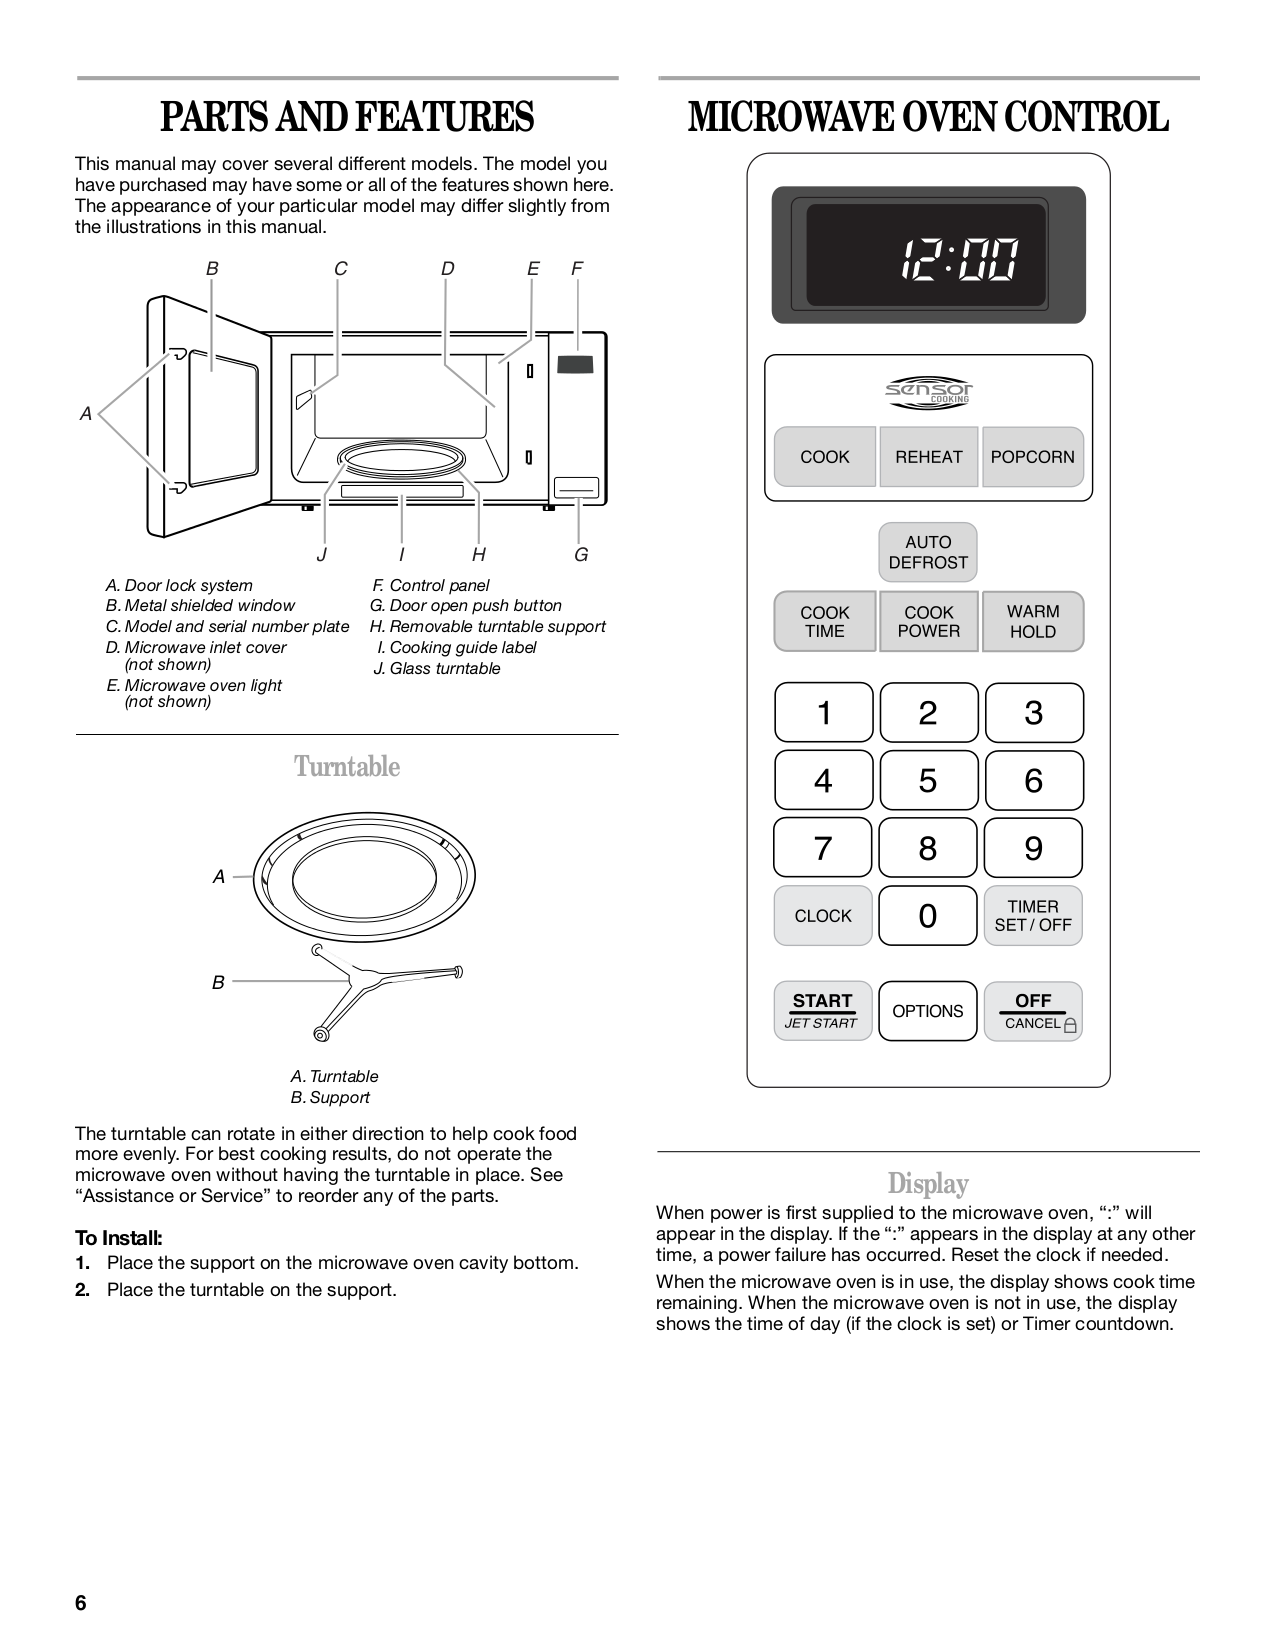 Whirlpool Microwave Troubleshooting Bestmicrowave Wiring Diagram Pdf Manual For Gold Gt4175sps